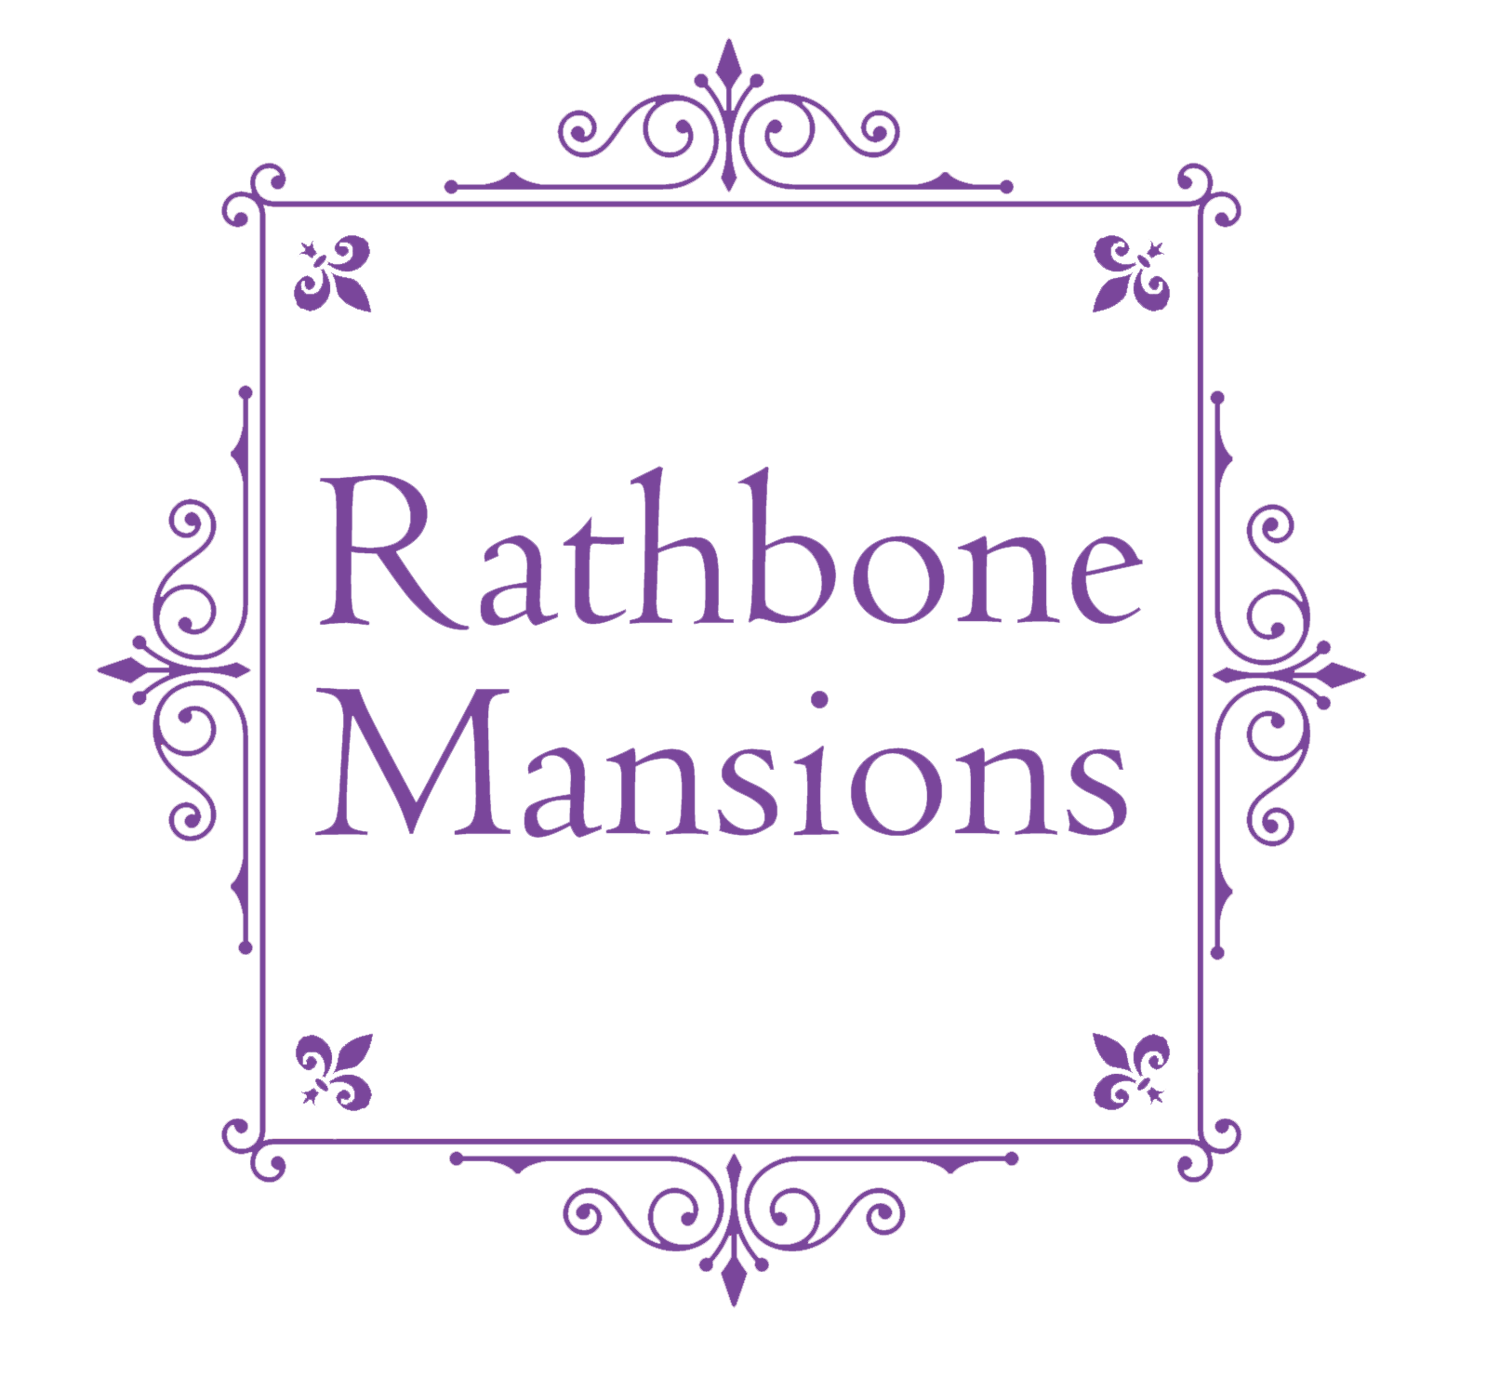 Rathbone Mansions Authentic New Orleans Hotel